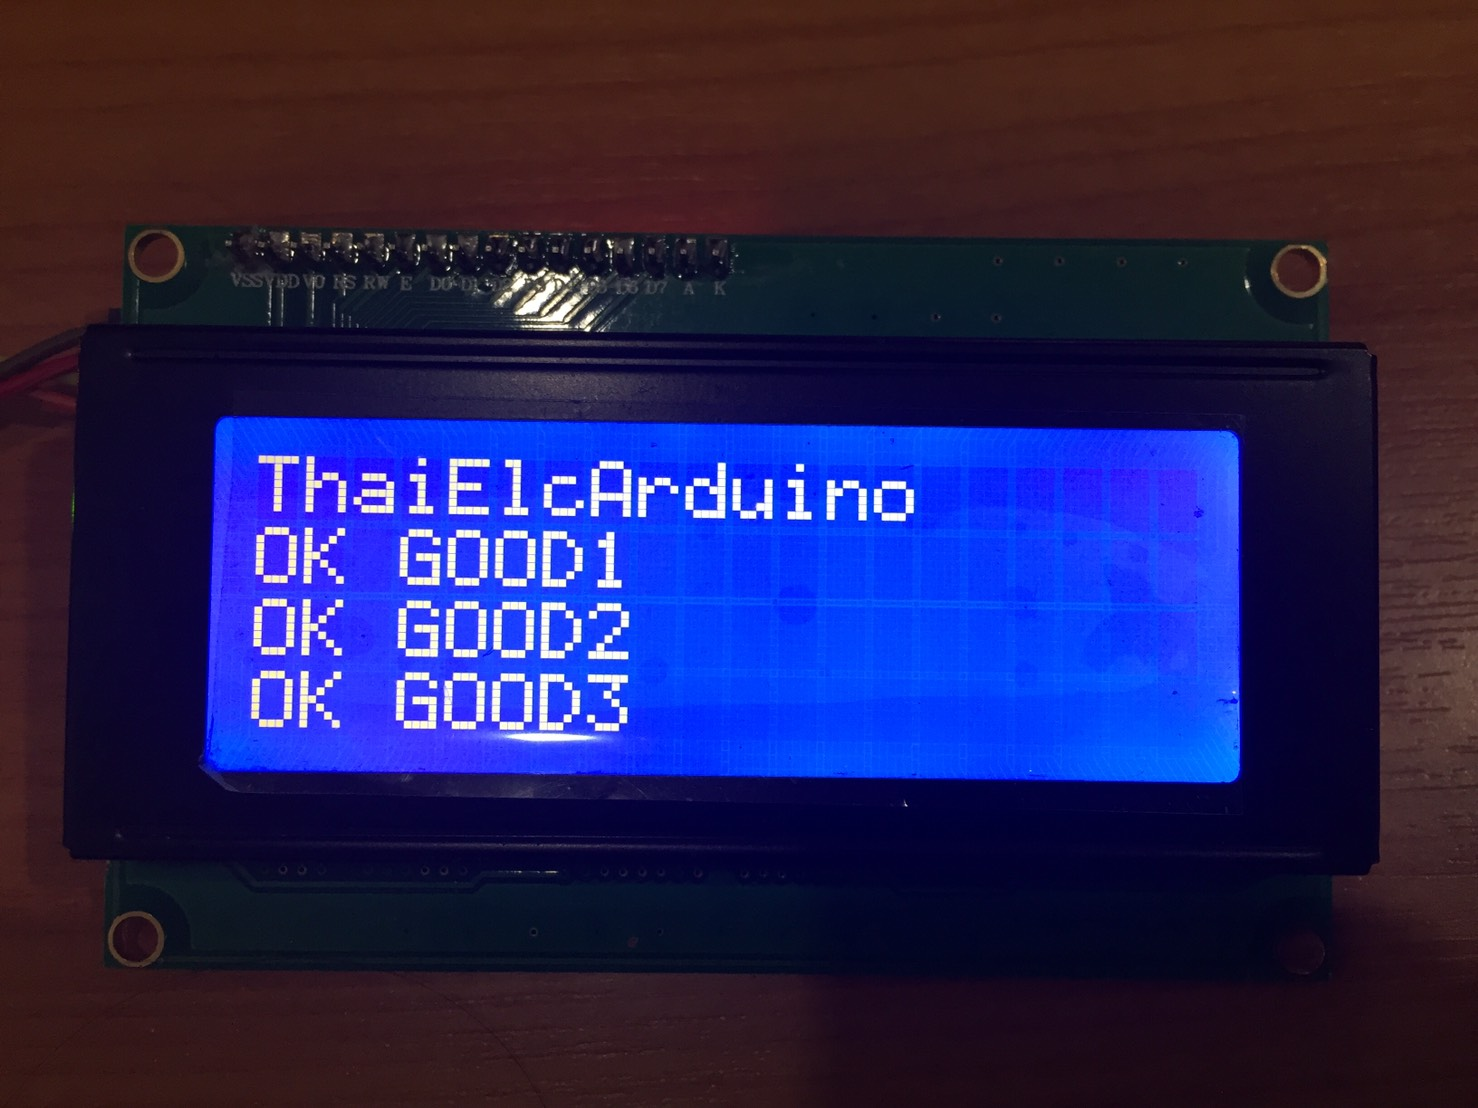 LCD Character Display 20x4 (สีฟ้า) with I2C Serial interface Board